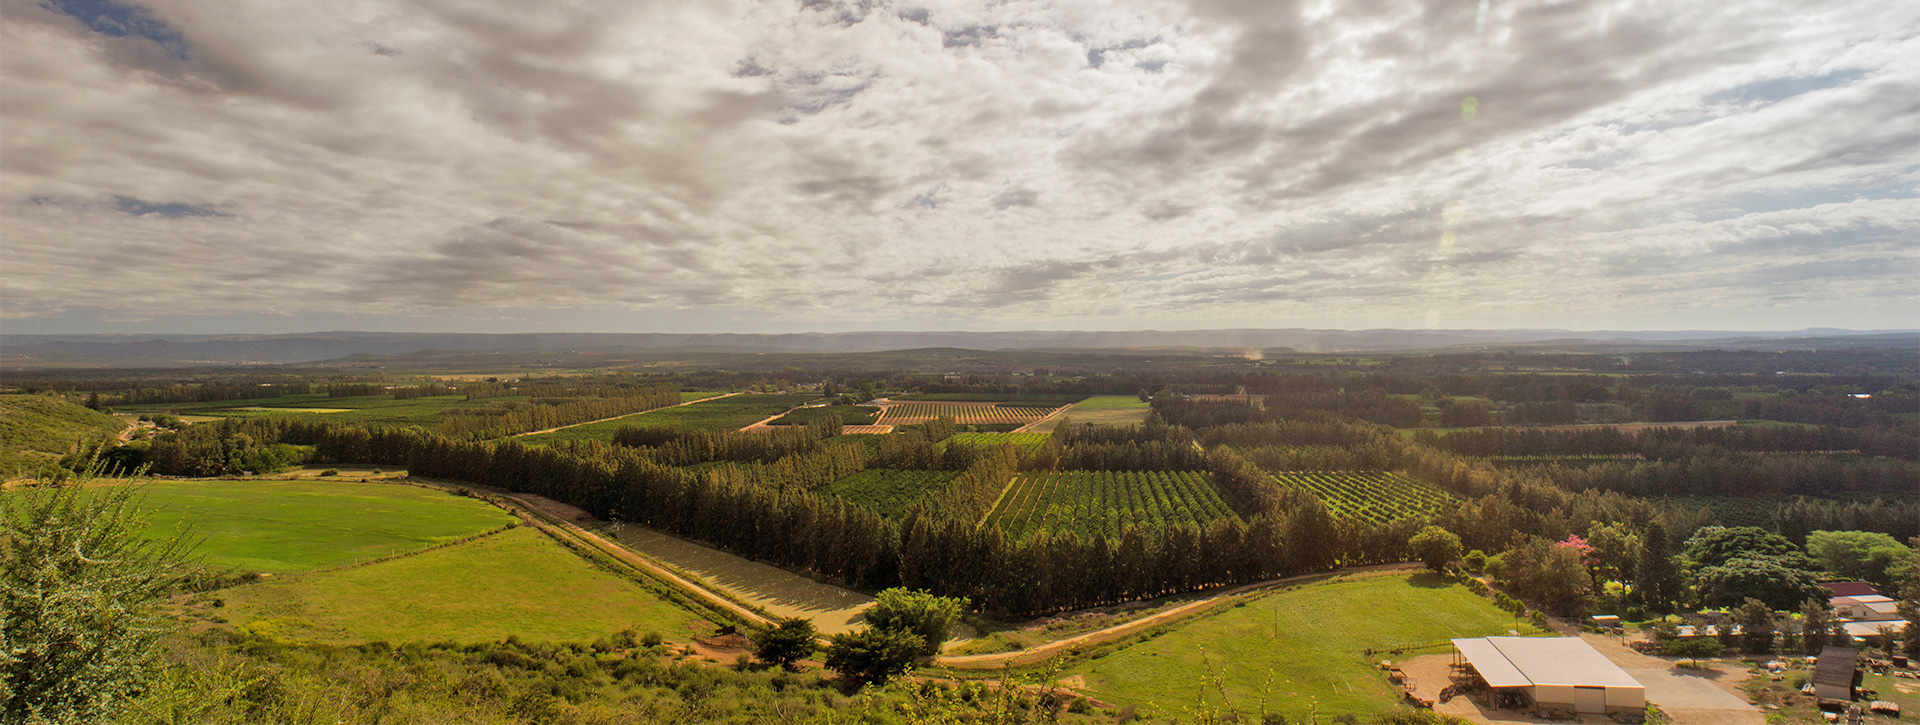 Sundays-river-valley-citrus-growers-paradise-south-africa